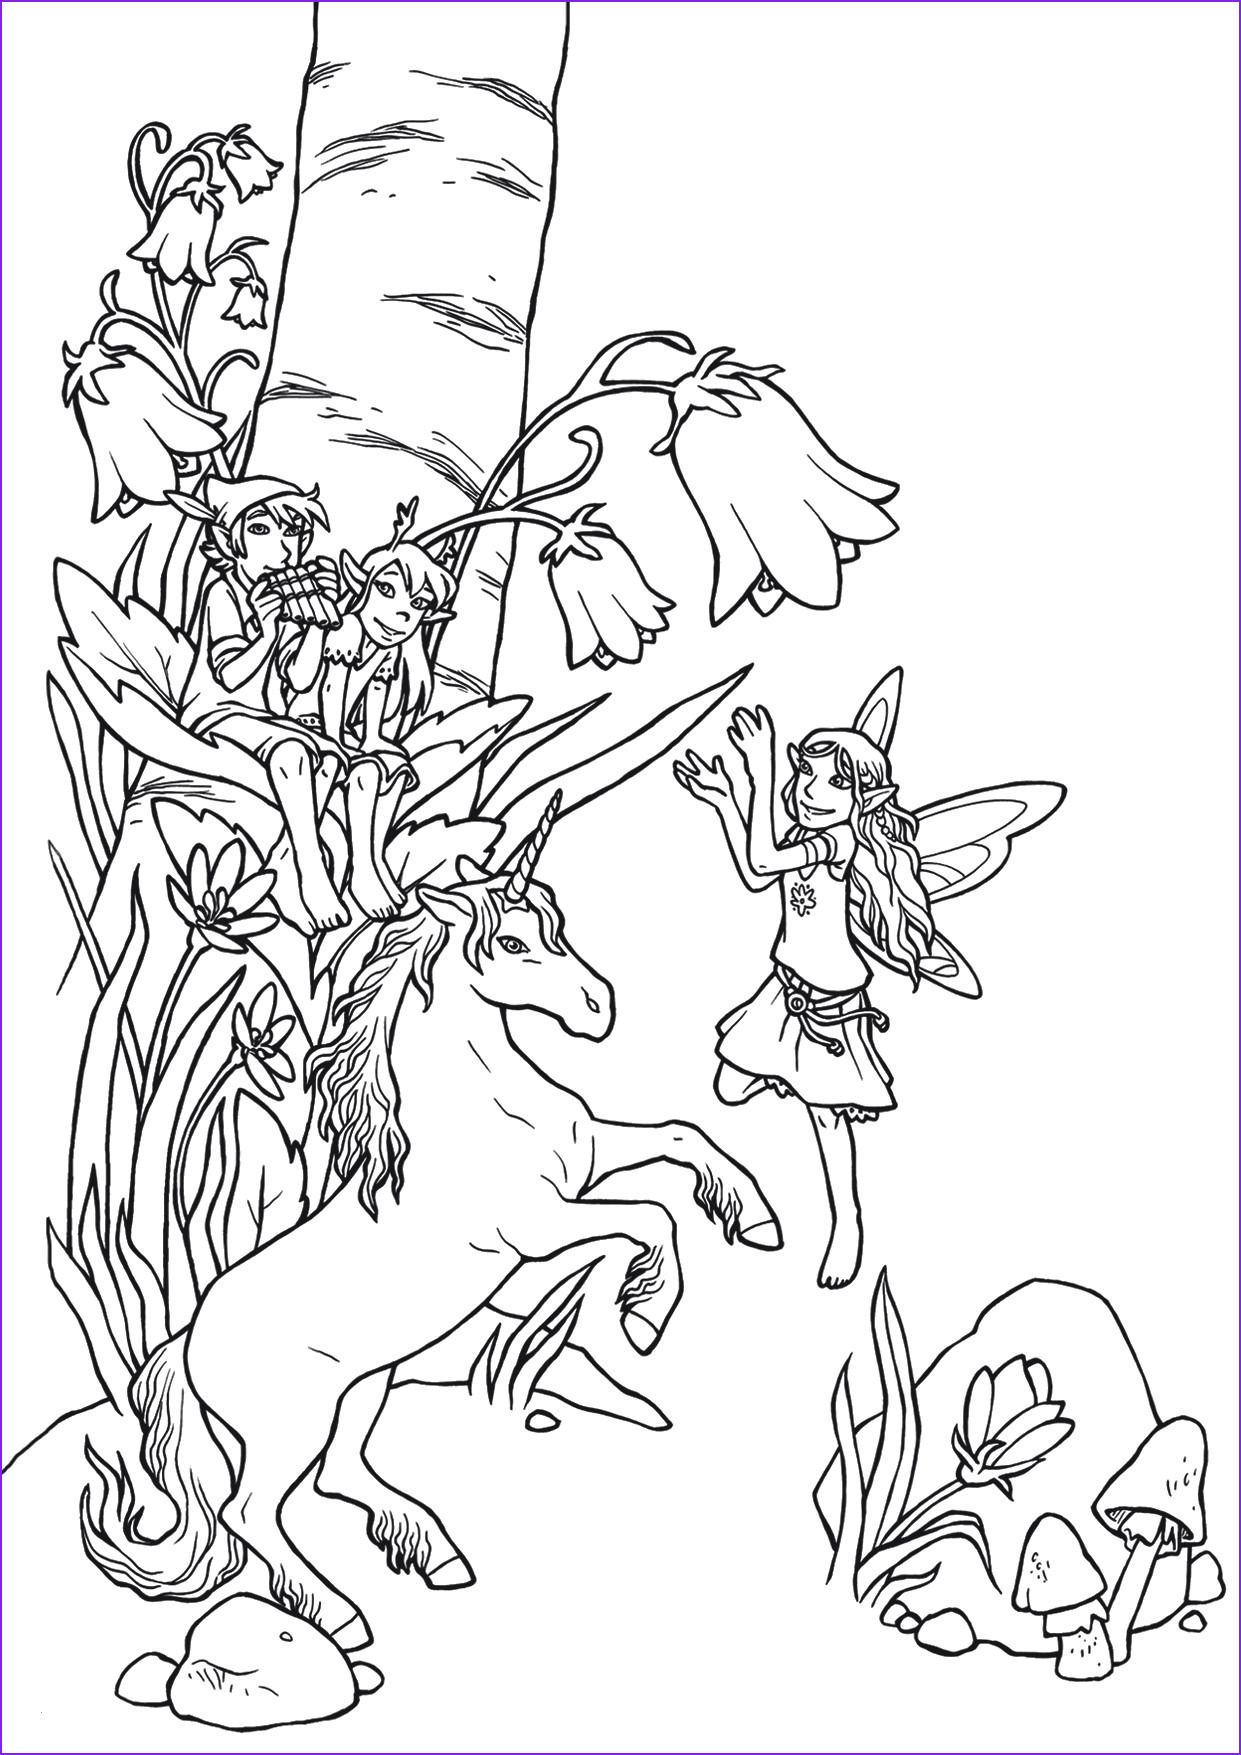 Pin By Coloring Pages Forkids On Elfen Und Feen Ausmalbilder Fairy Coloring Pages Fairy Coloring Coloring Pages